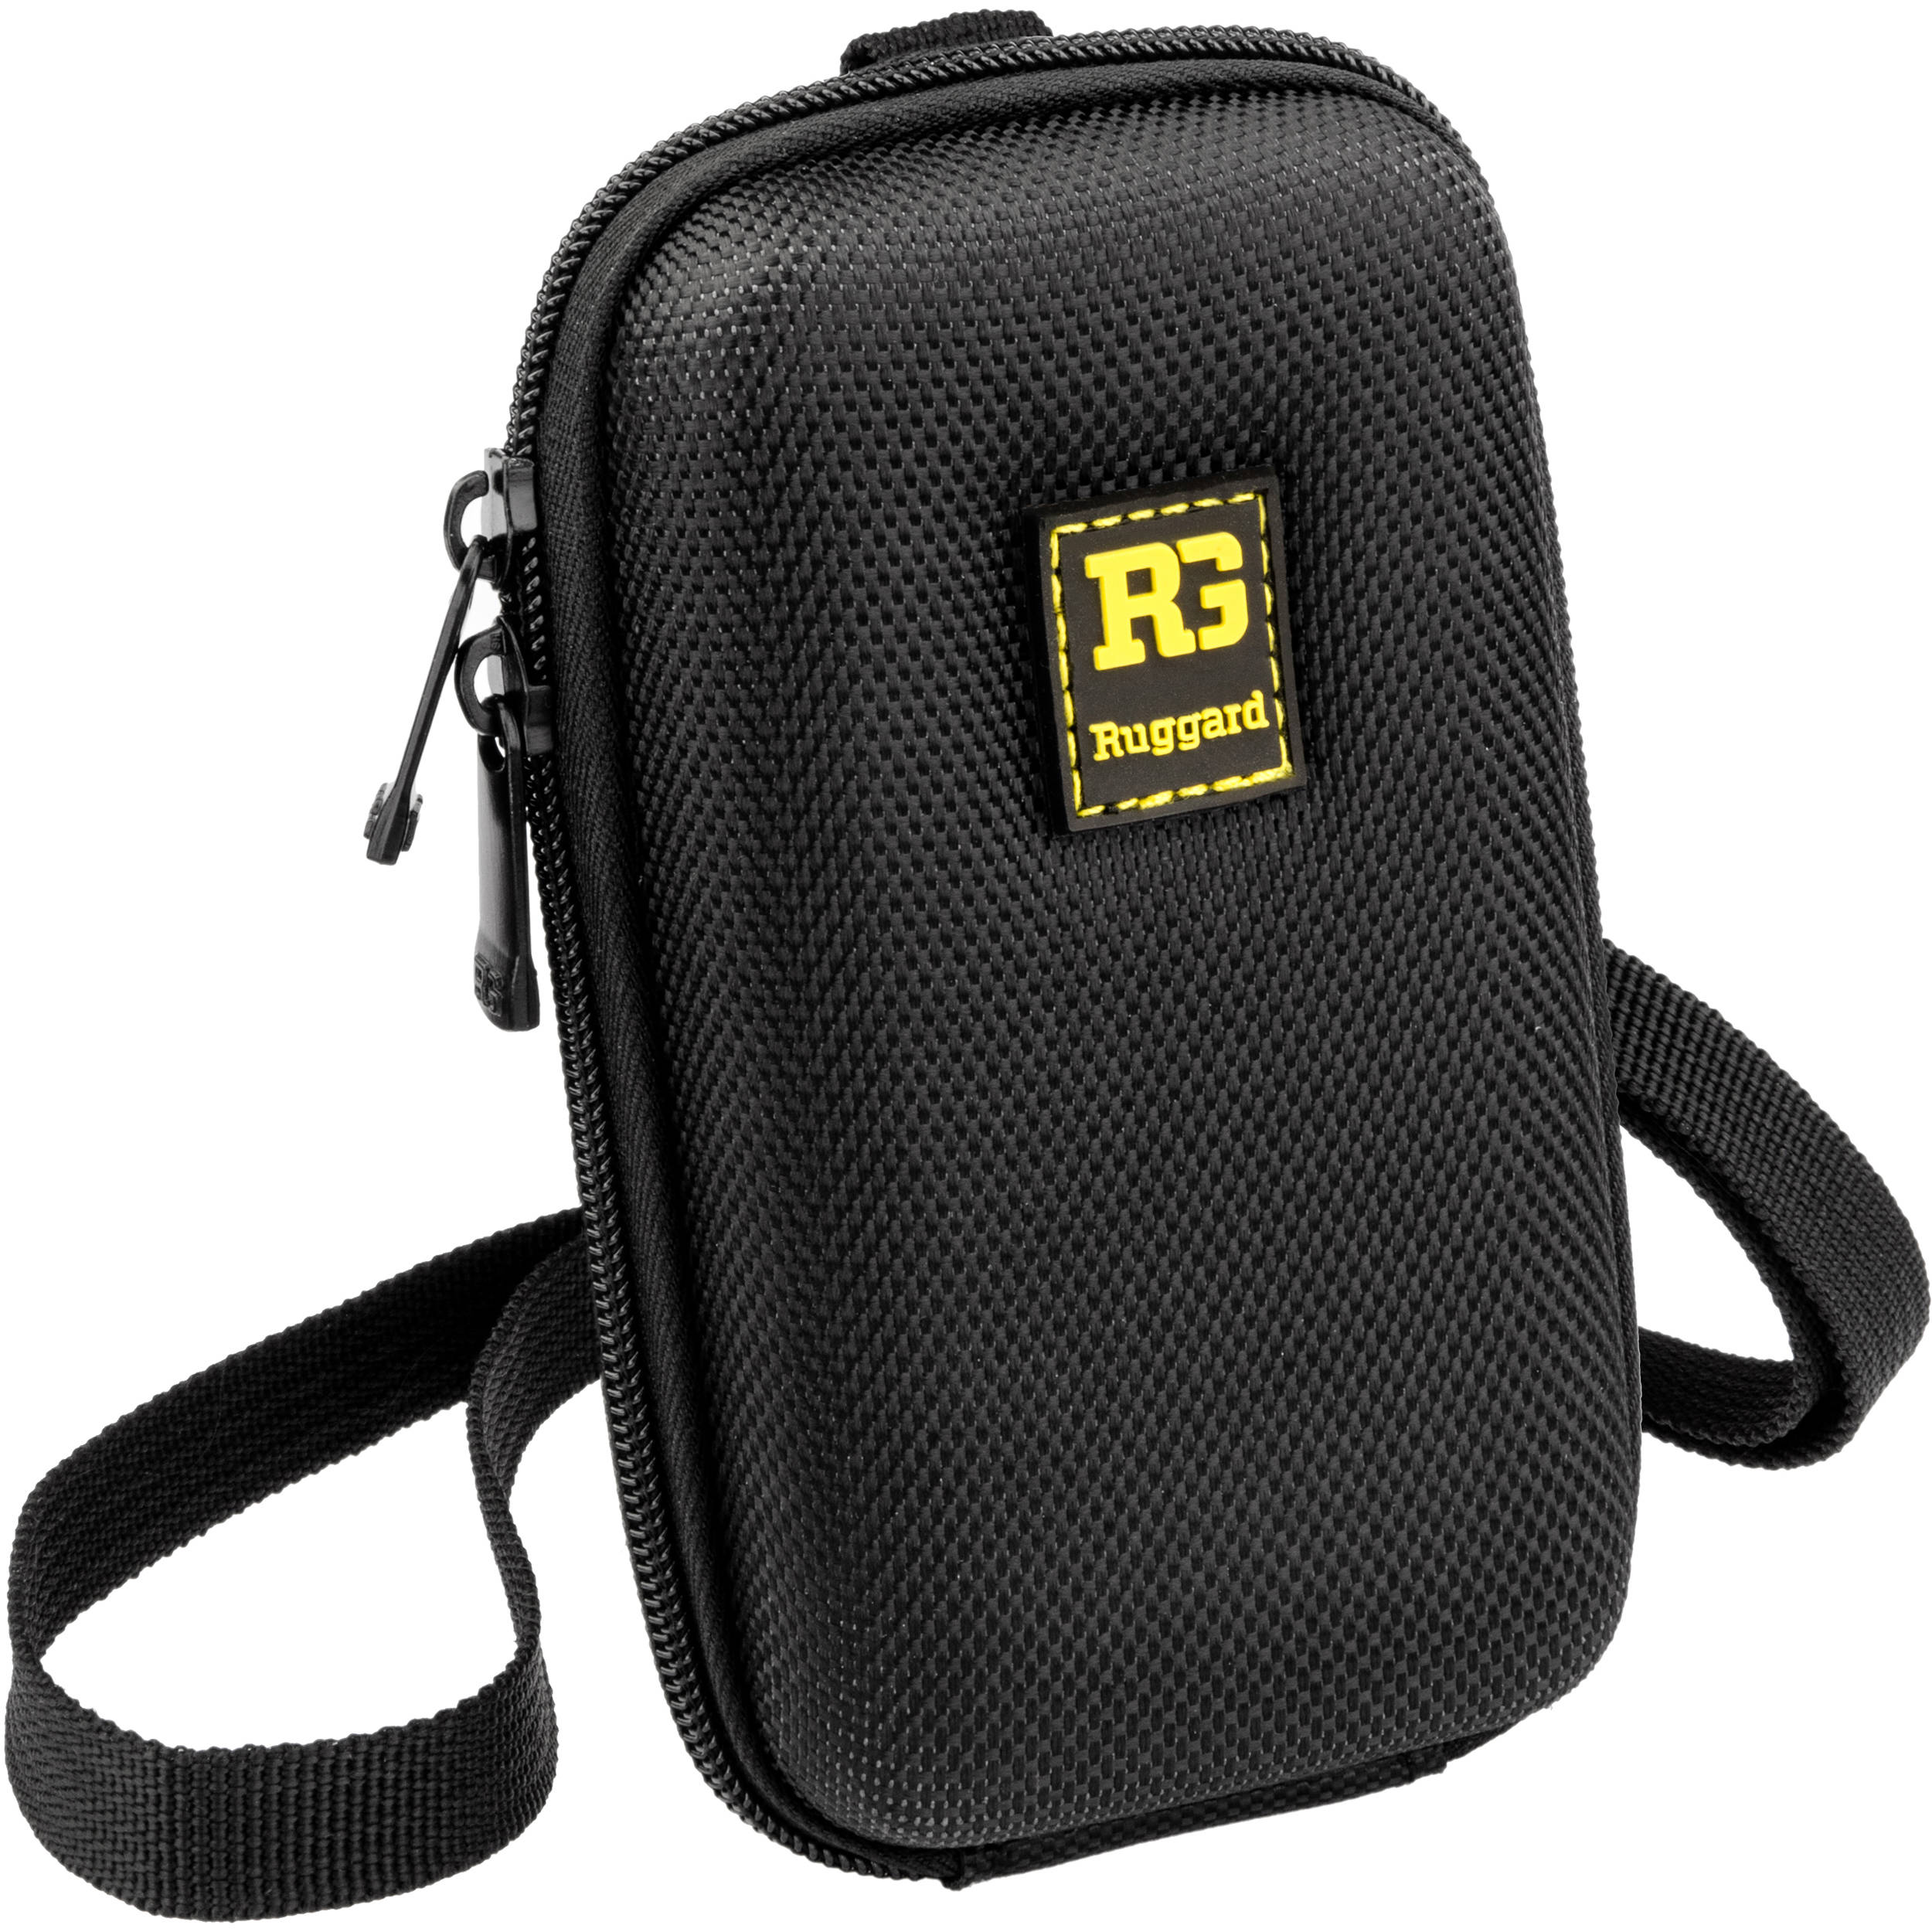 Ruggard HFV-250 Protective Camera Case HFV-250 B&H Photo Video